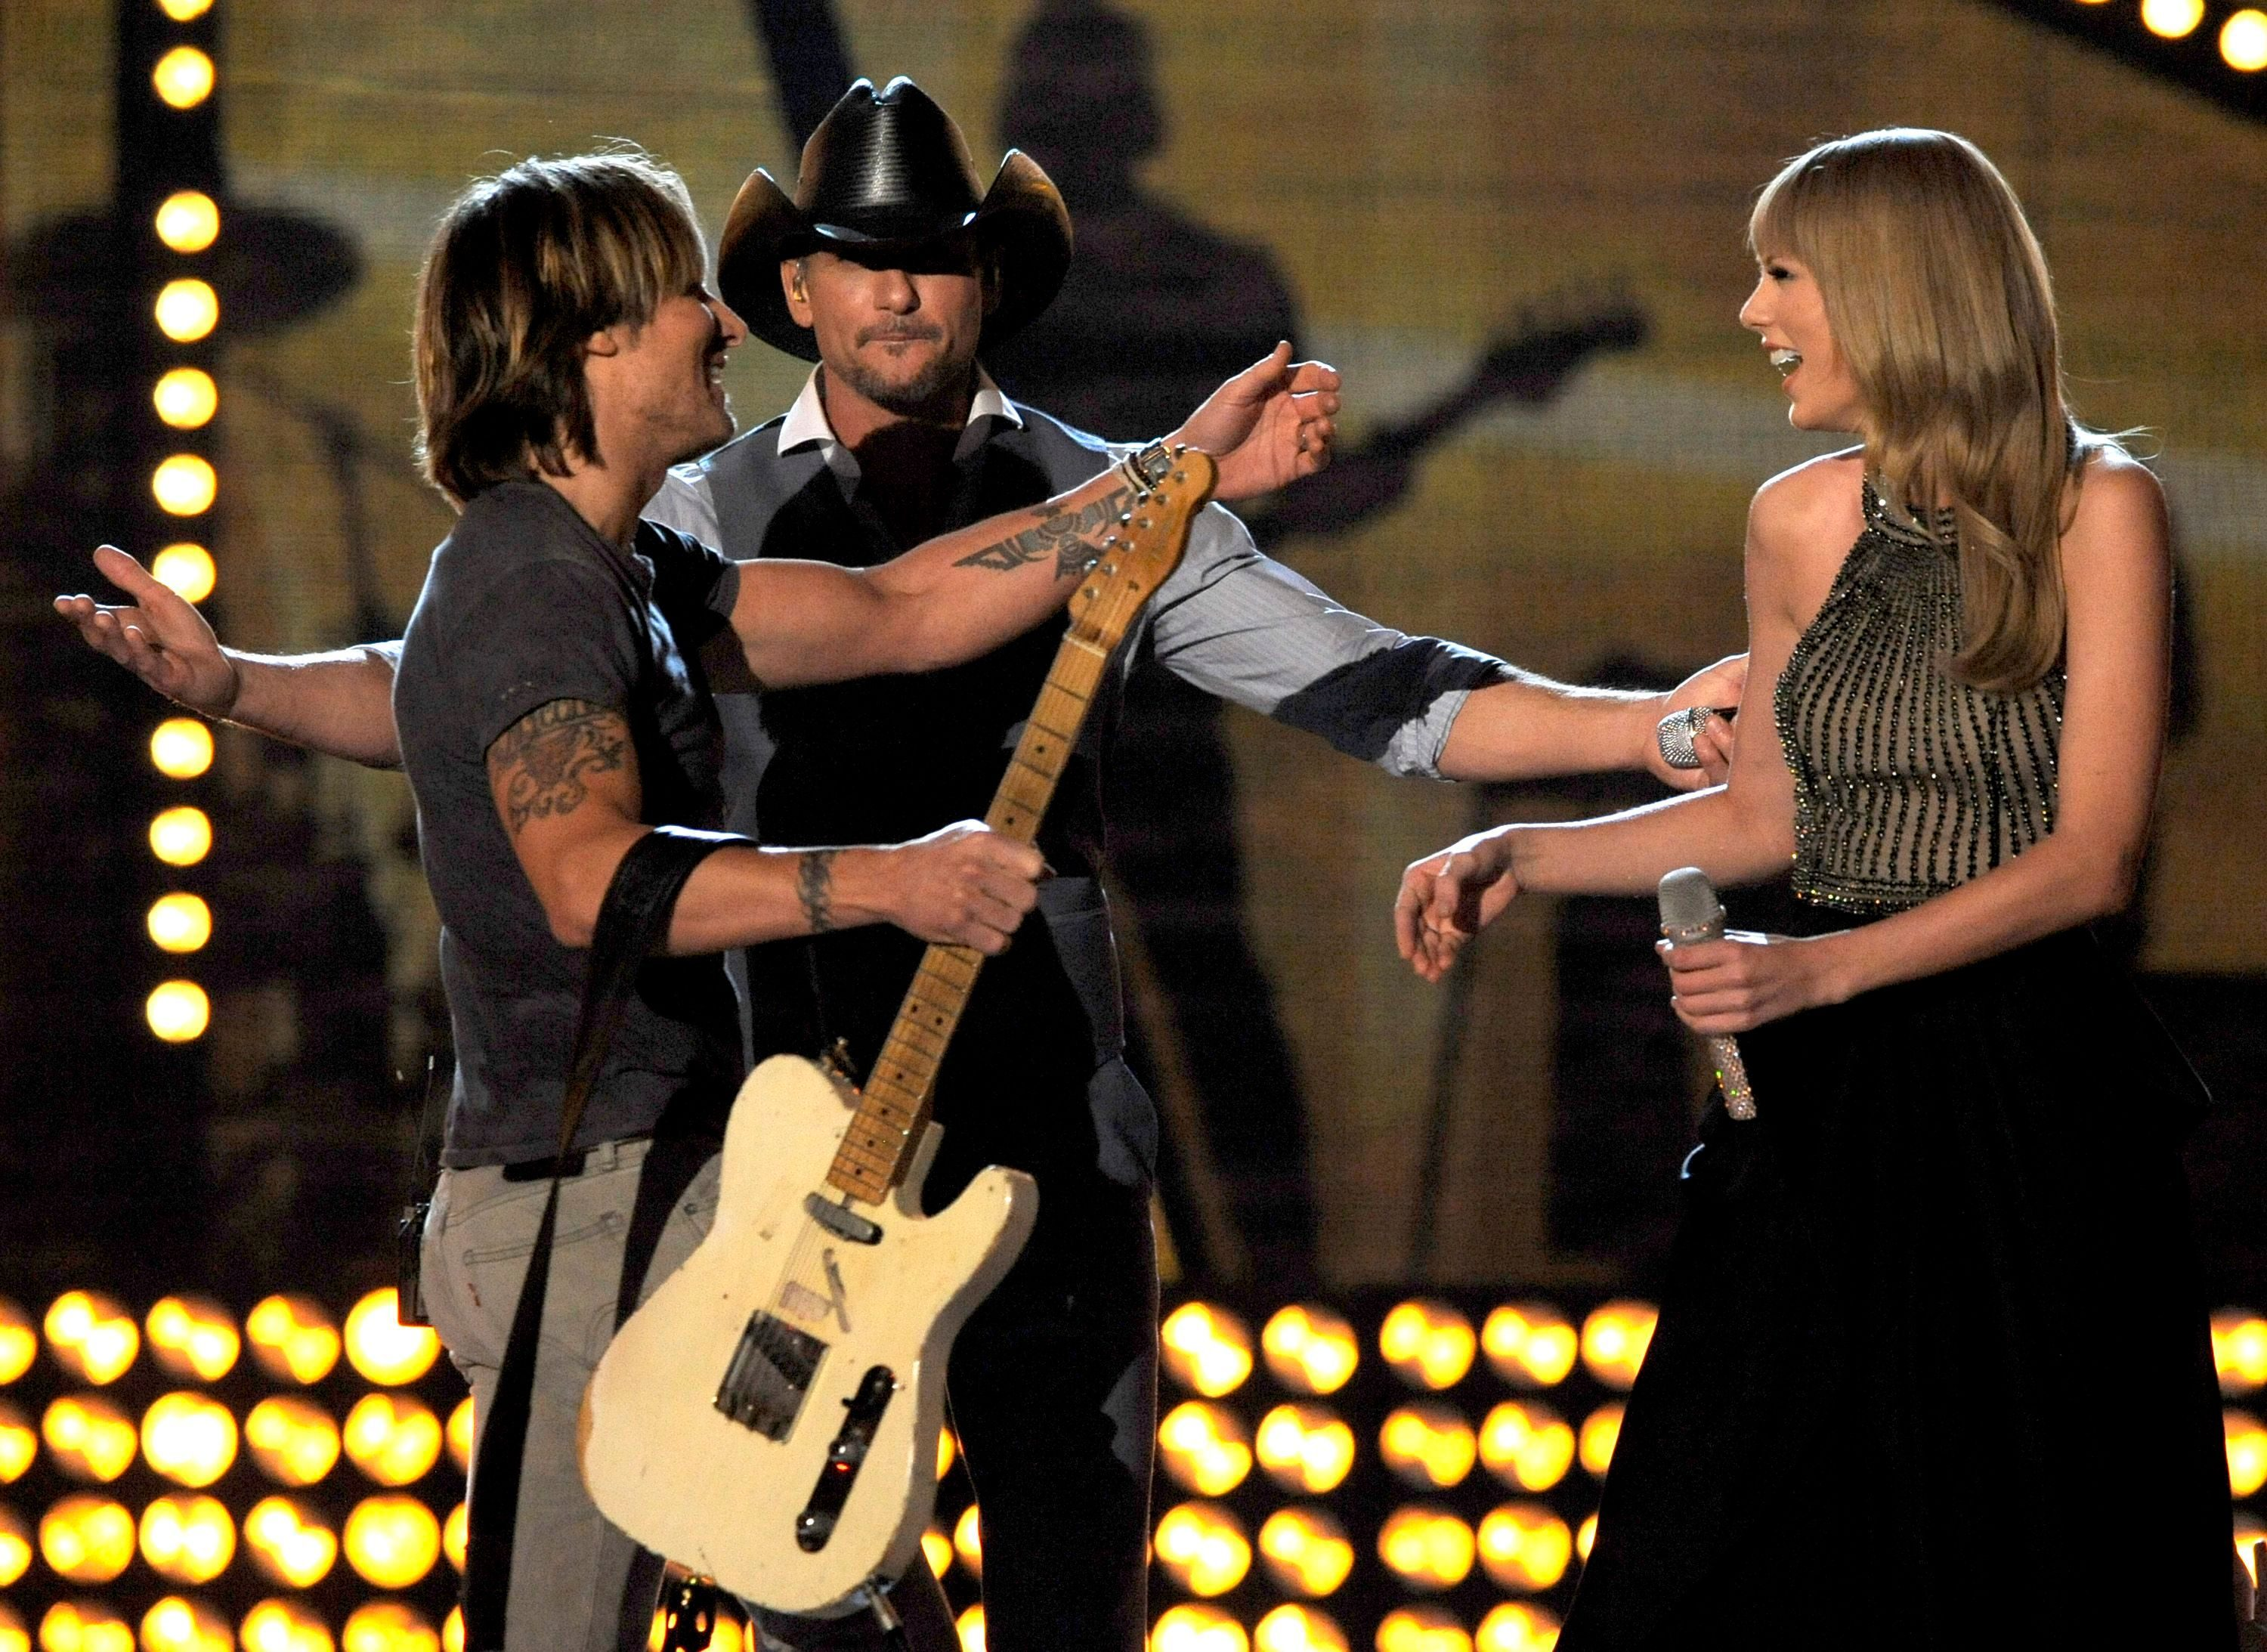 Mandatory Credit: Photo by Chris Pizzello/Invision/AP/Shutterstock (9192379b) From left, Keith Urban, Tim McGraw and Taylor Swift perform at the 48th Annual Academy of Country Music Awards at the MGM Grand Garden Arena in Las Vegas on 48th Annual Academy of Country Music Awards - Show, Las Vegas, USA - 7 Apr 2013